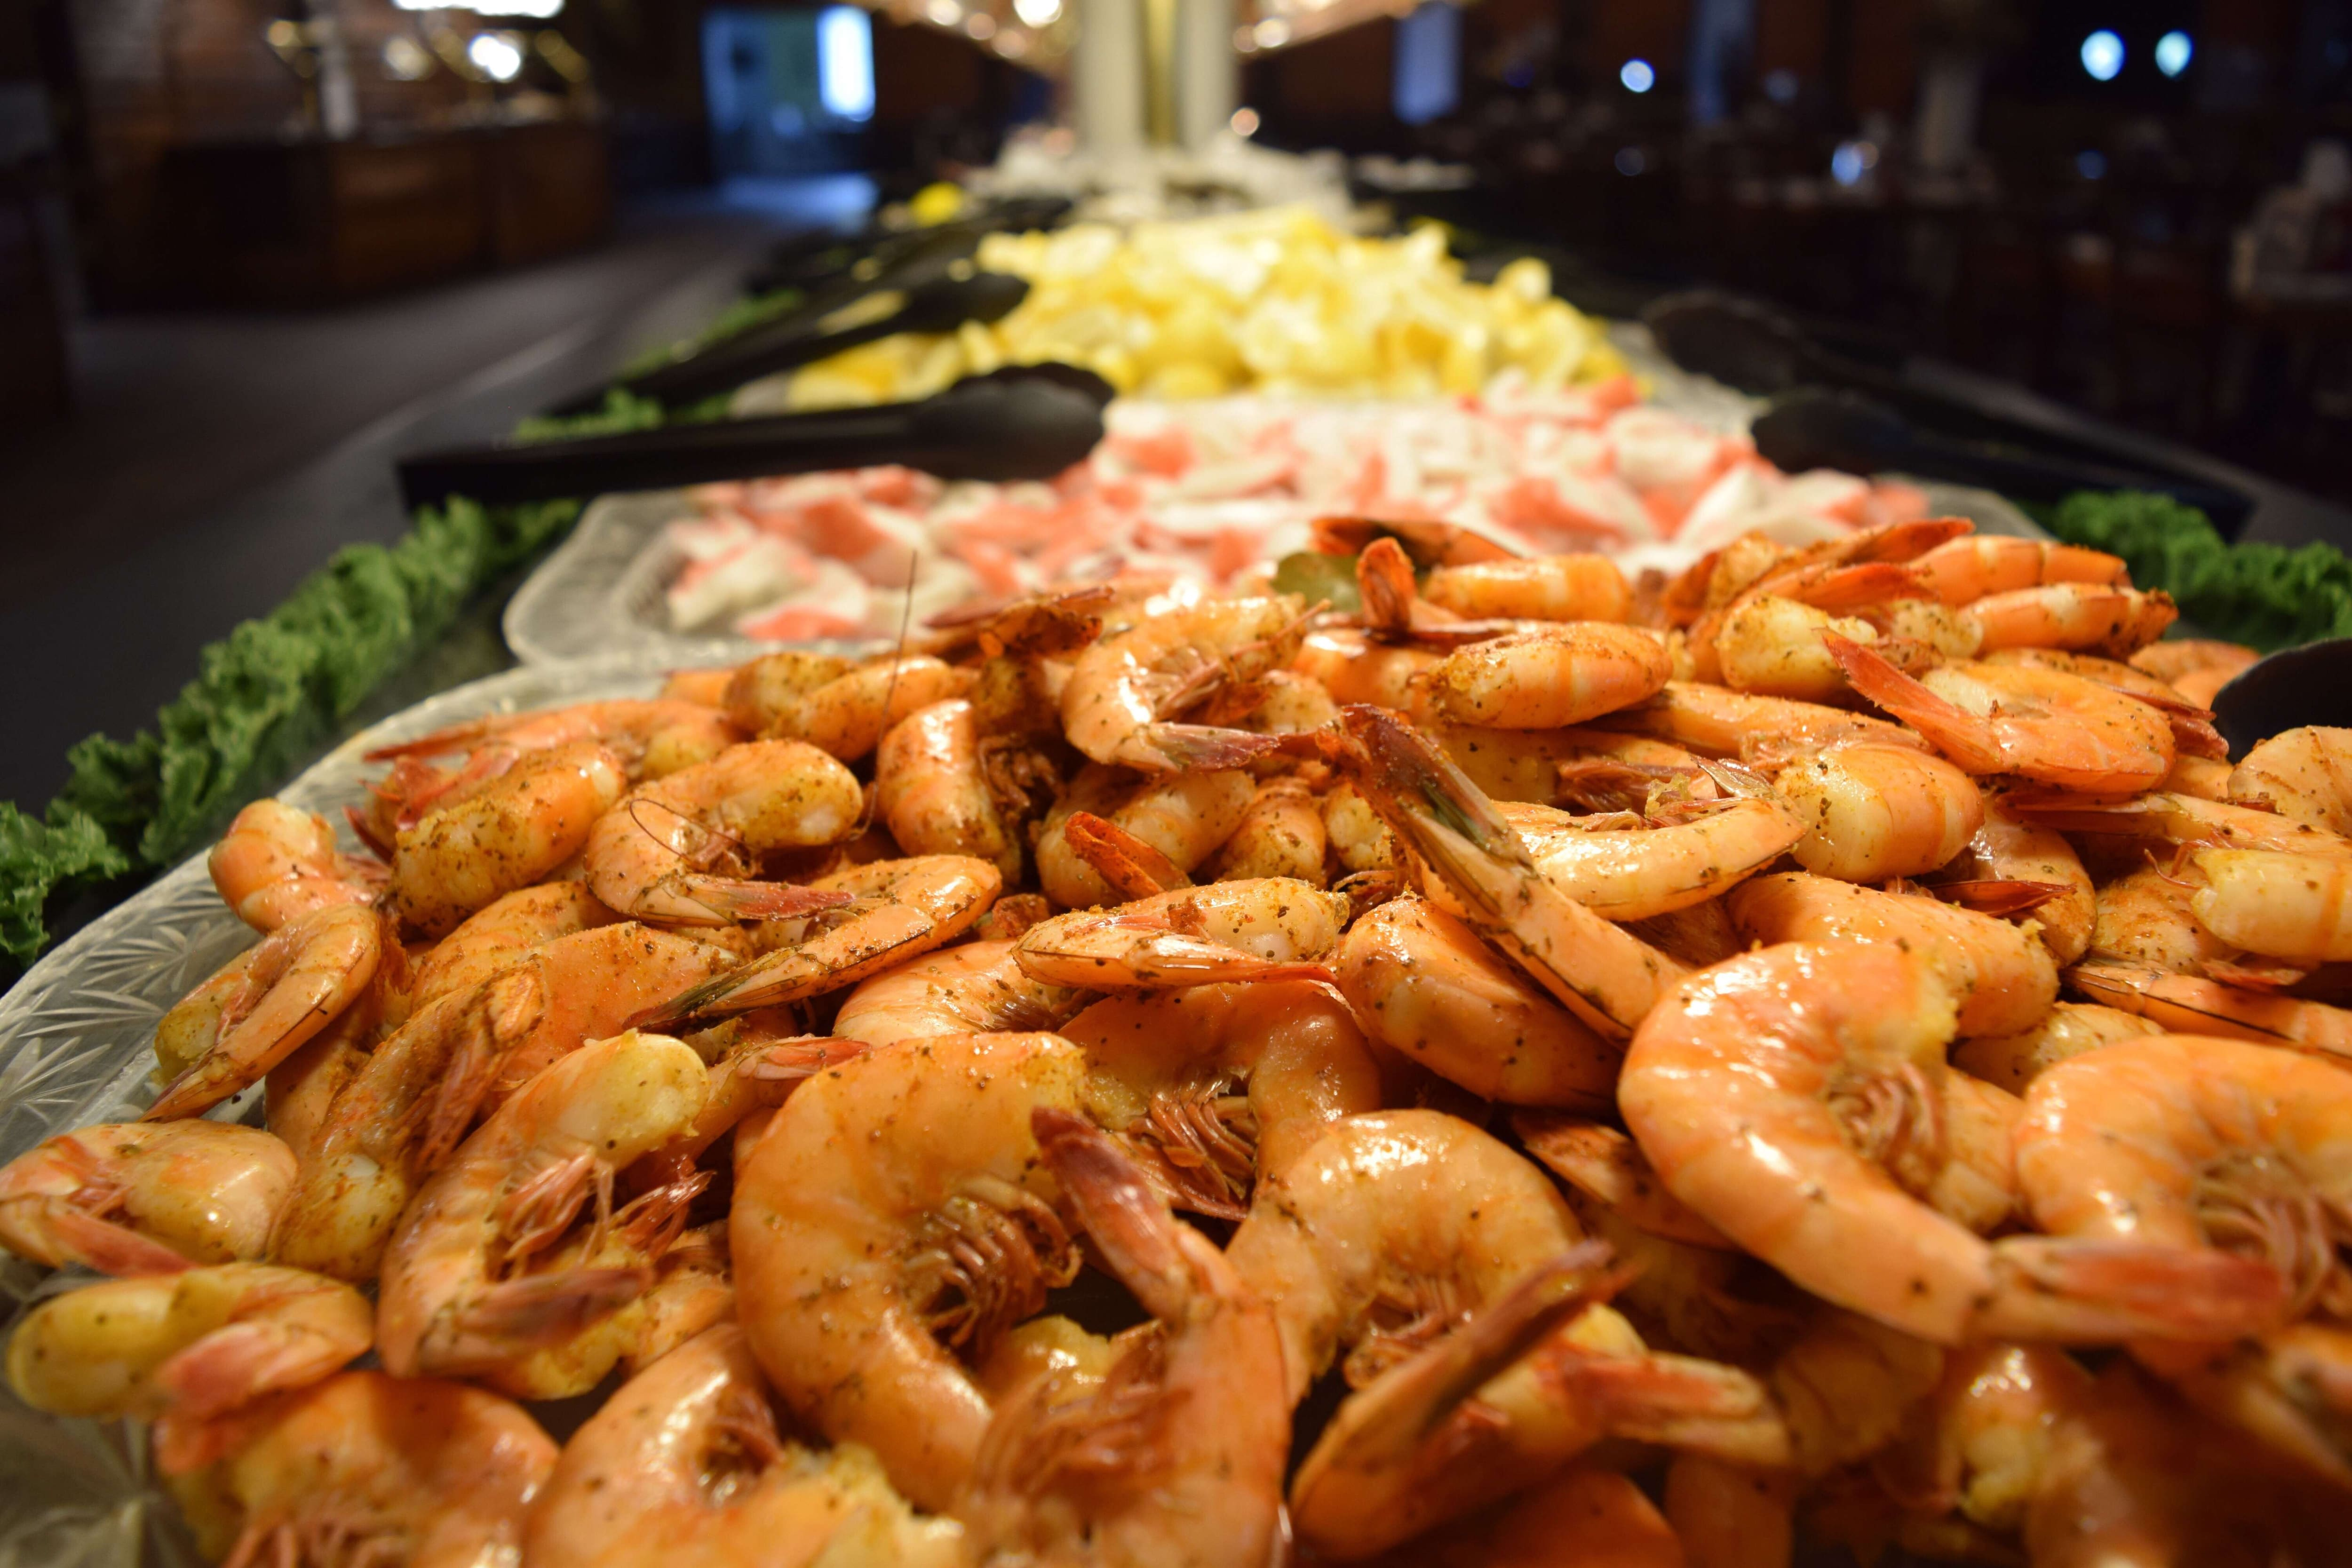 Pirate S Table Calabash Seafood Buffet